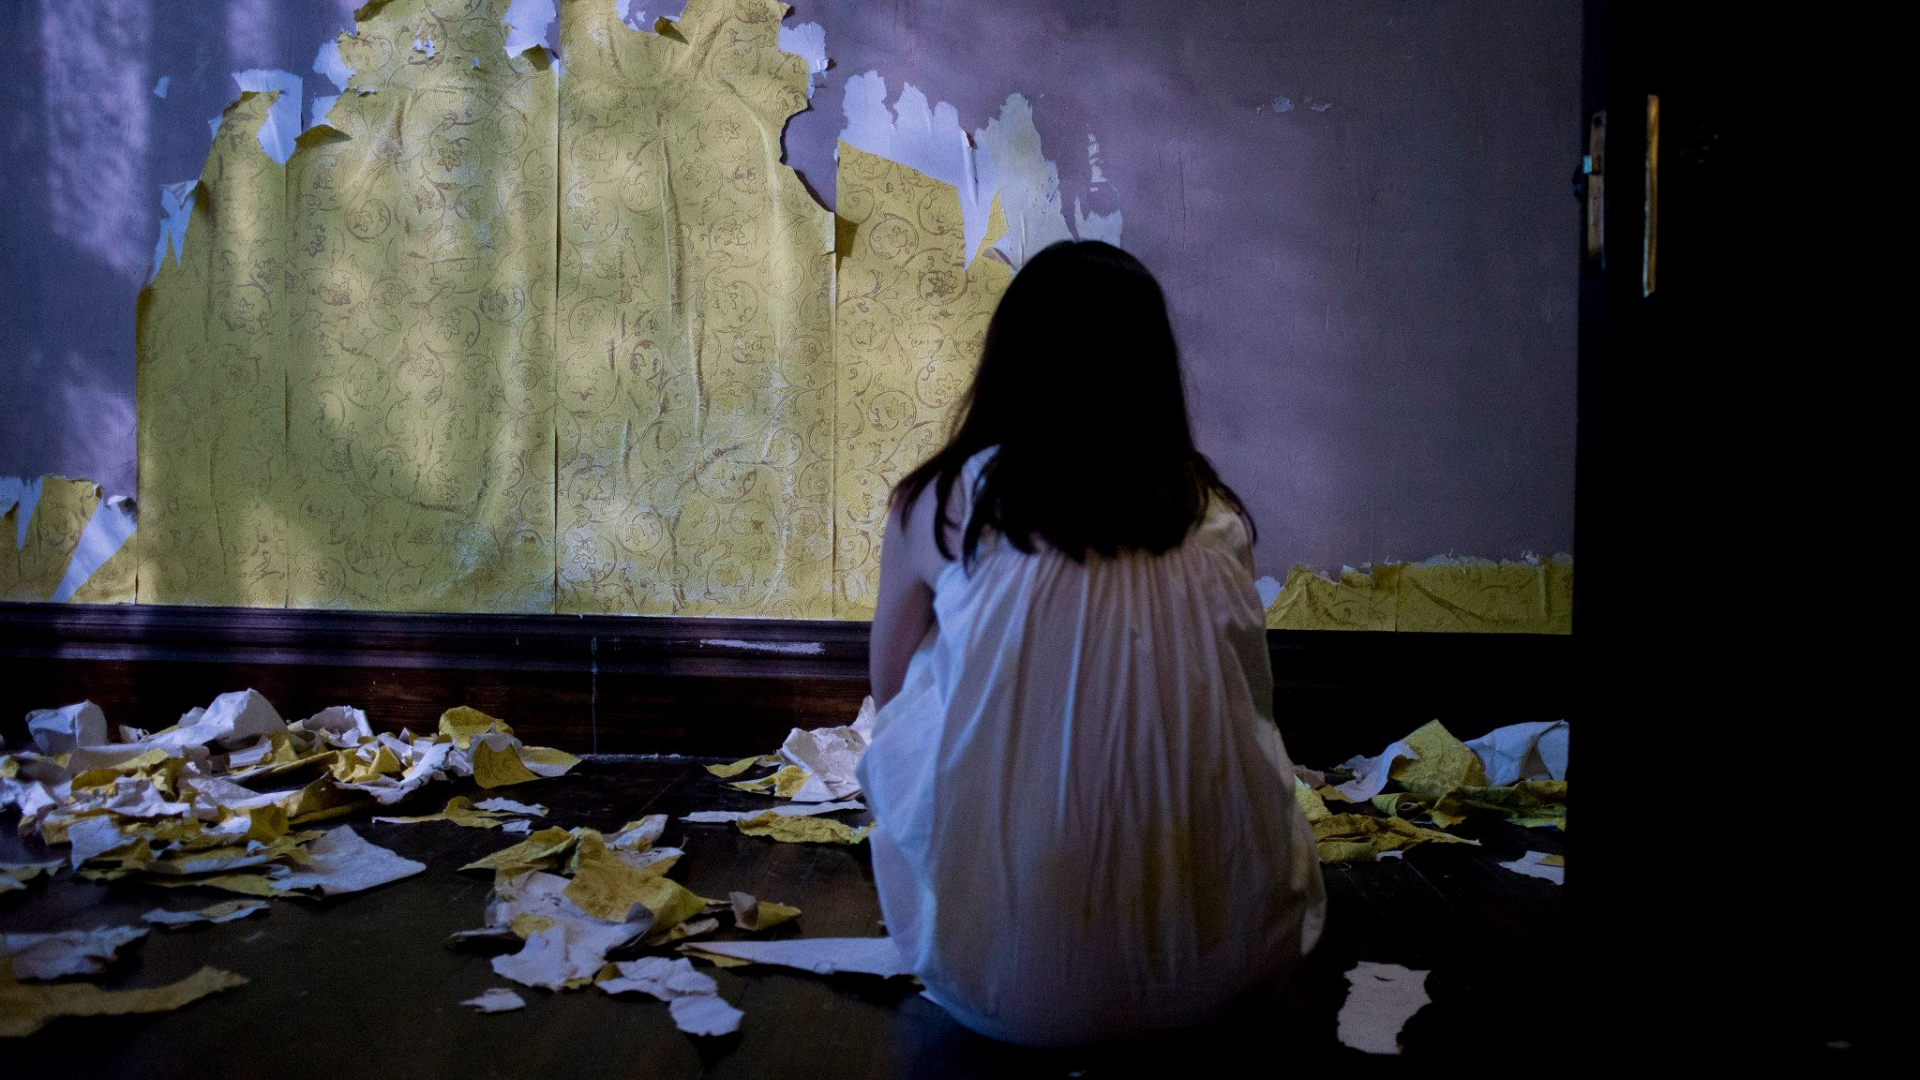 depression turned into insanity in the yellow wallpaper by charlotte gilman In 'the yellow wallpaper', by charlotte perkins gilman,the dominant/submissive relationship between an oppressivehusband and his submissive wife pushes her from depressioninto insanityflawed human nature seems to play a great role in herbreakdown.